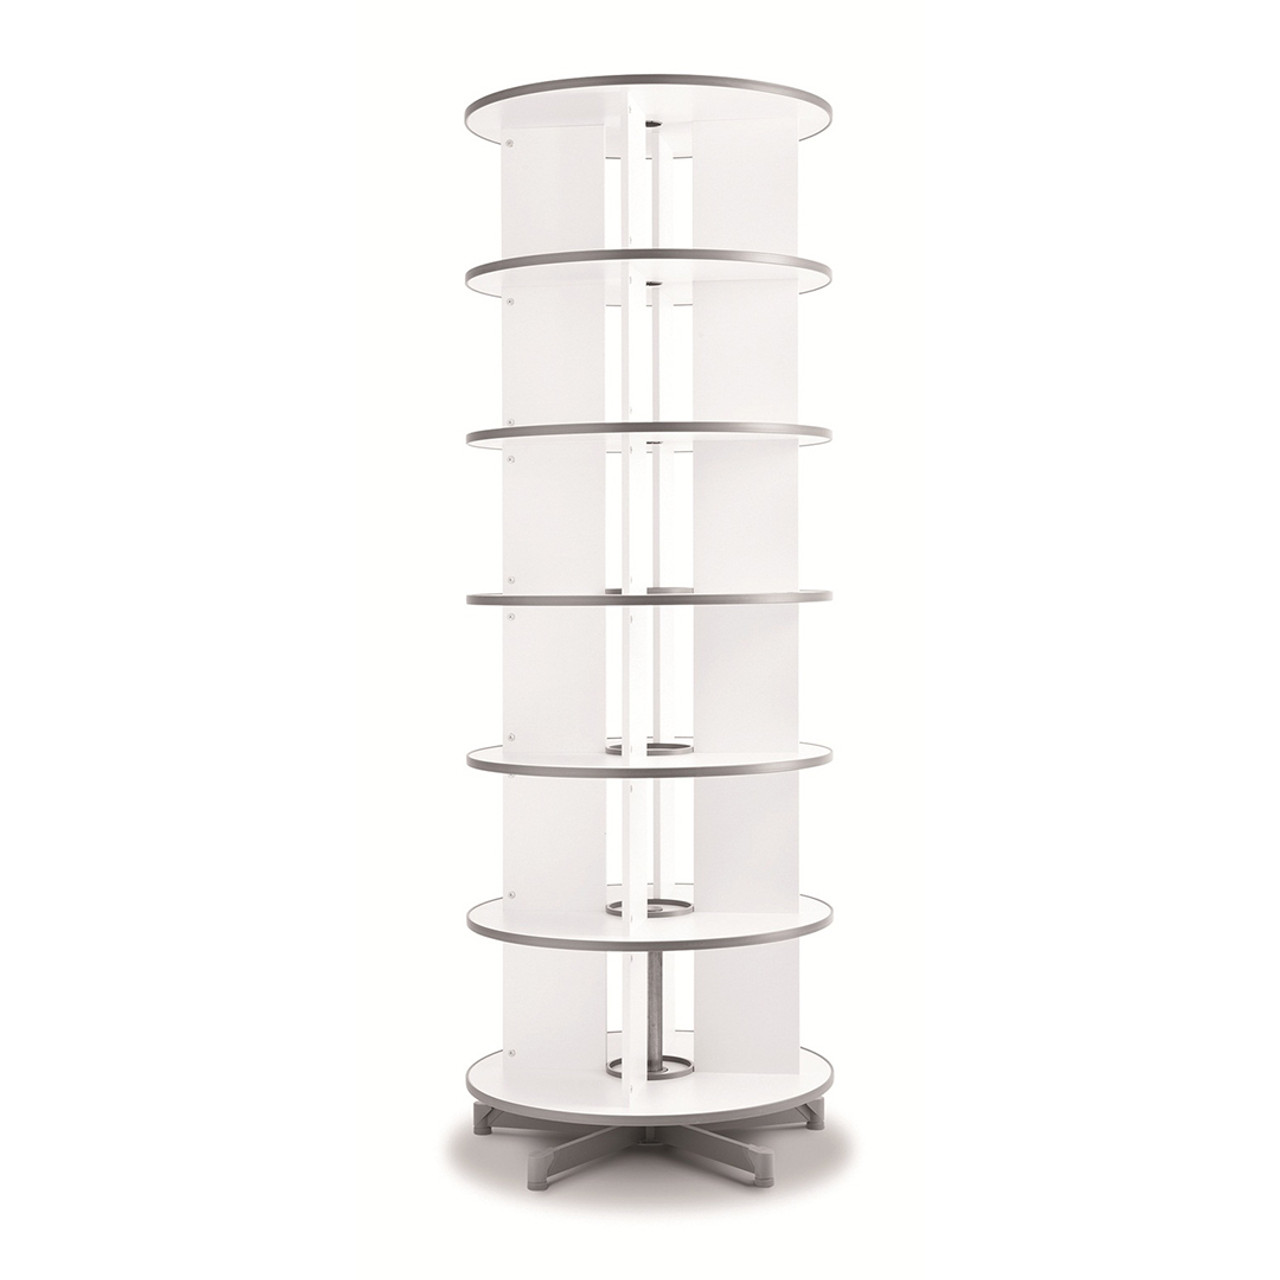 Moll One Turn Binder & File Carousel, 6-Tier Shelving